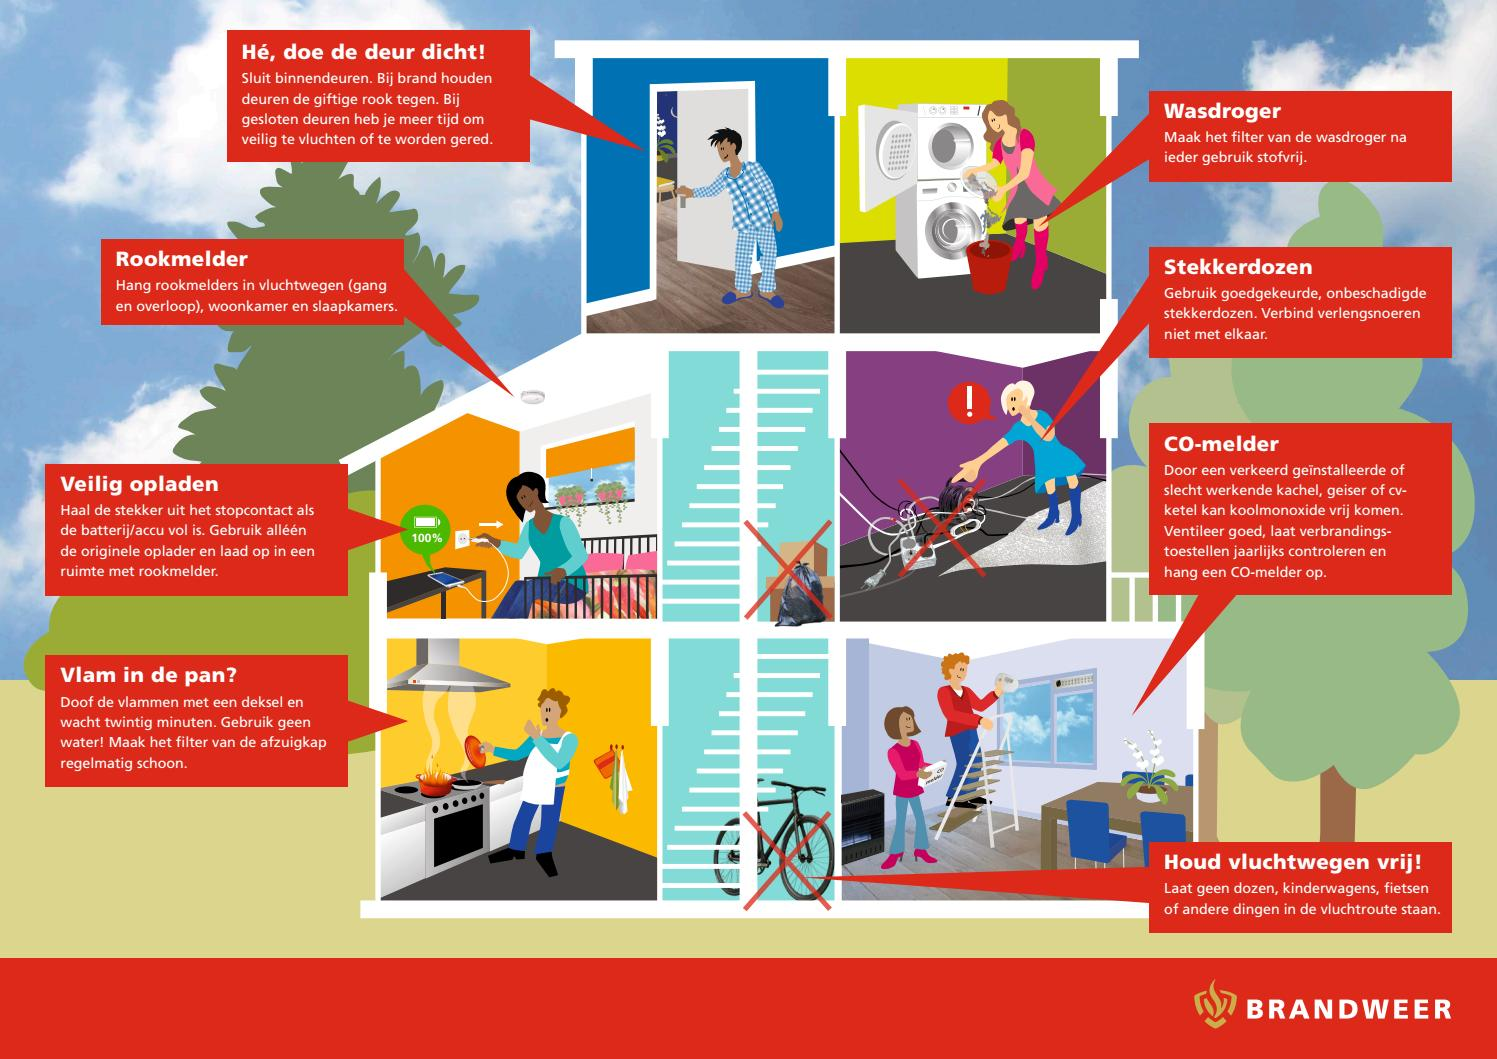 Rook Co Melder Flyer Portiek Huurwoningen By Brandweer Nederland Issuu